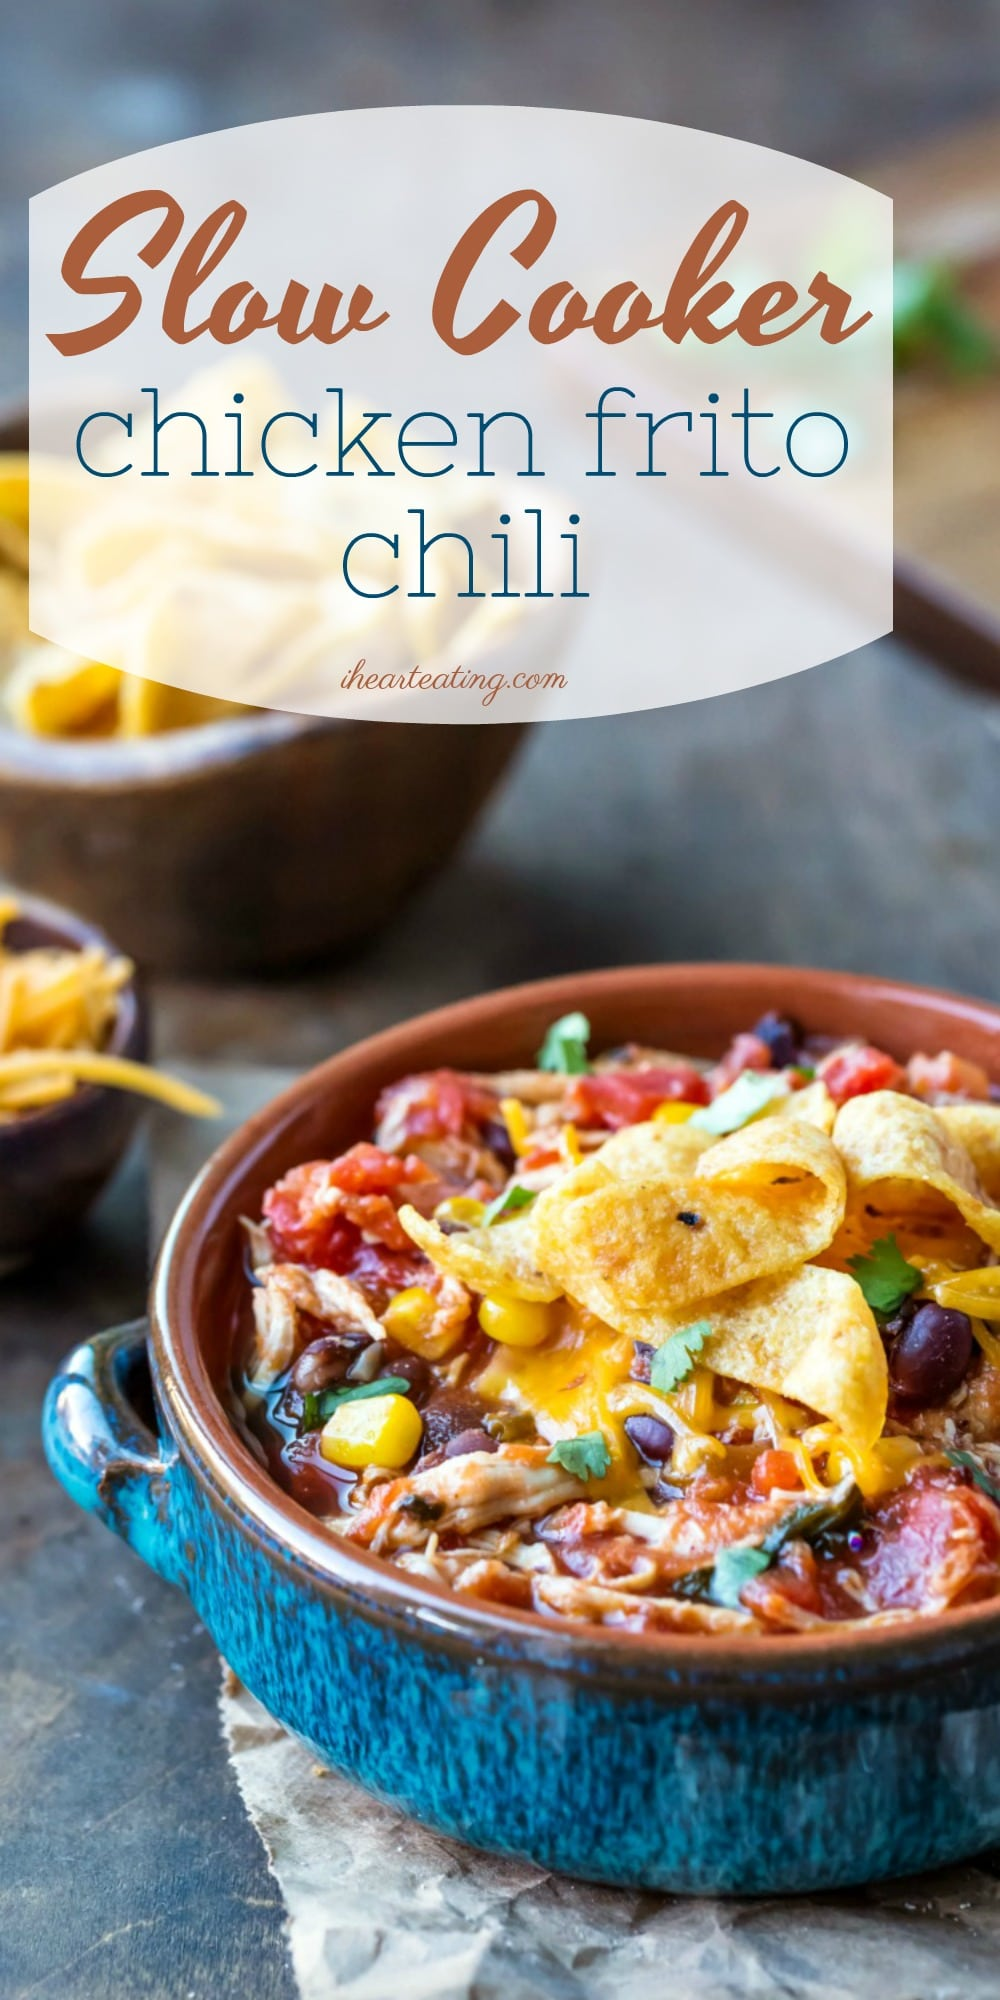 Slow Cooker Chicken Frito Chili is an easy chicken crock pot chili recipe that's made with healthy ingredients and requires almost no prep work. #slowcooker #crockpot #chicken #chili #dinner #recipe